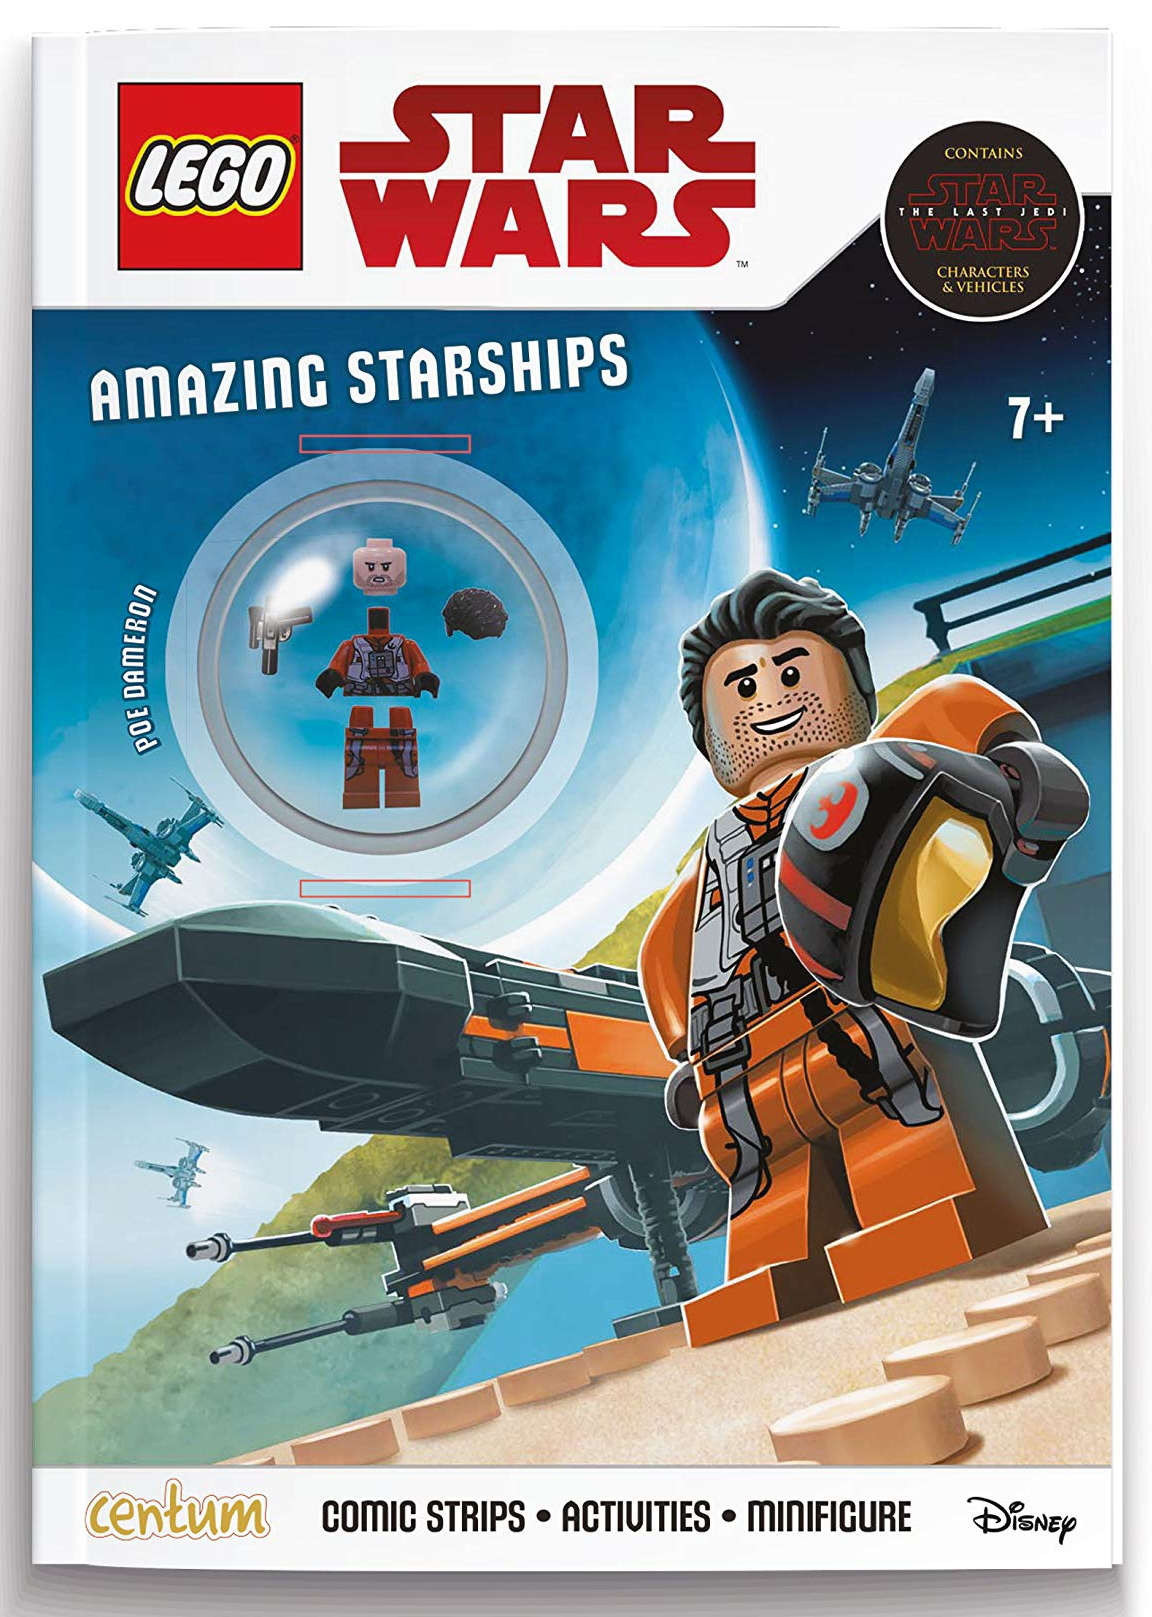 LEGO Star Wars: Amazing Starships (06.02.2020)